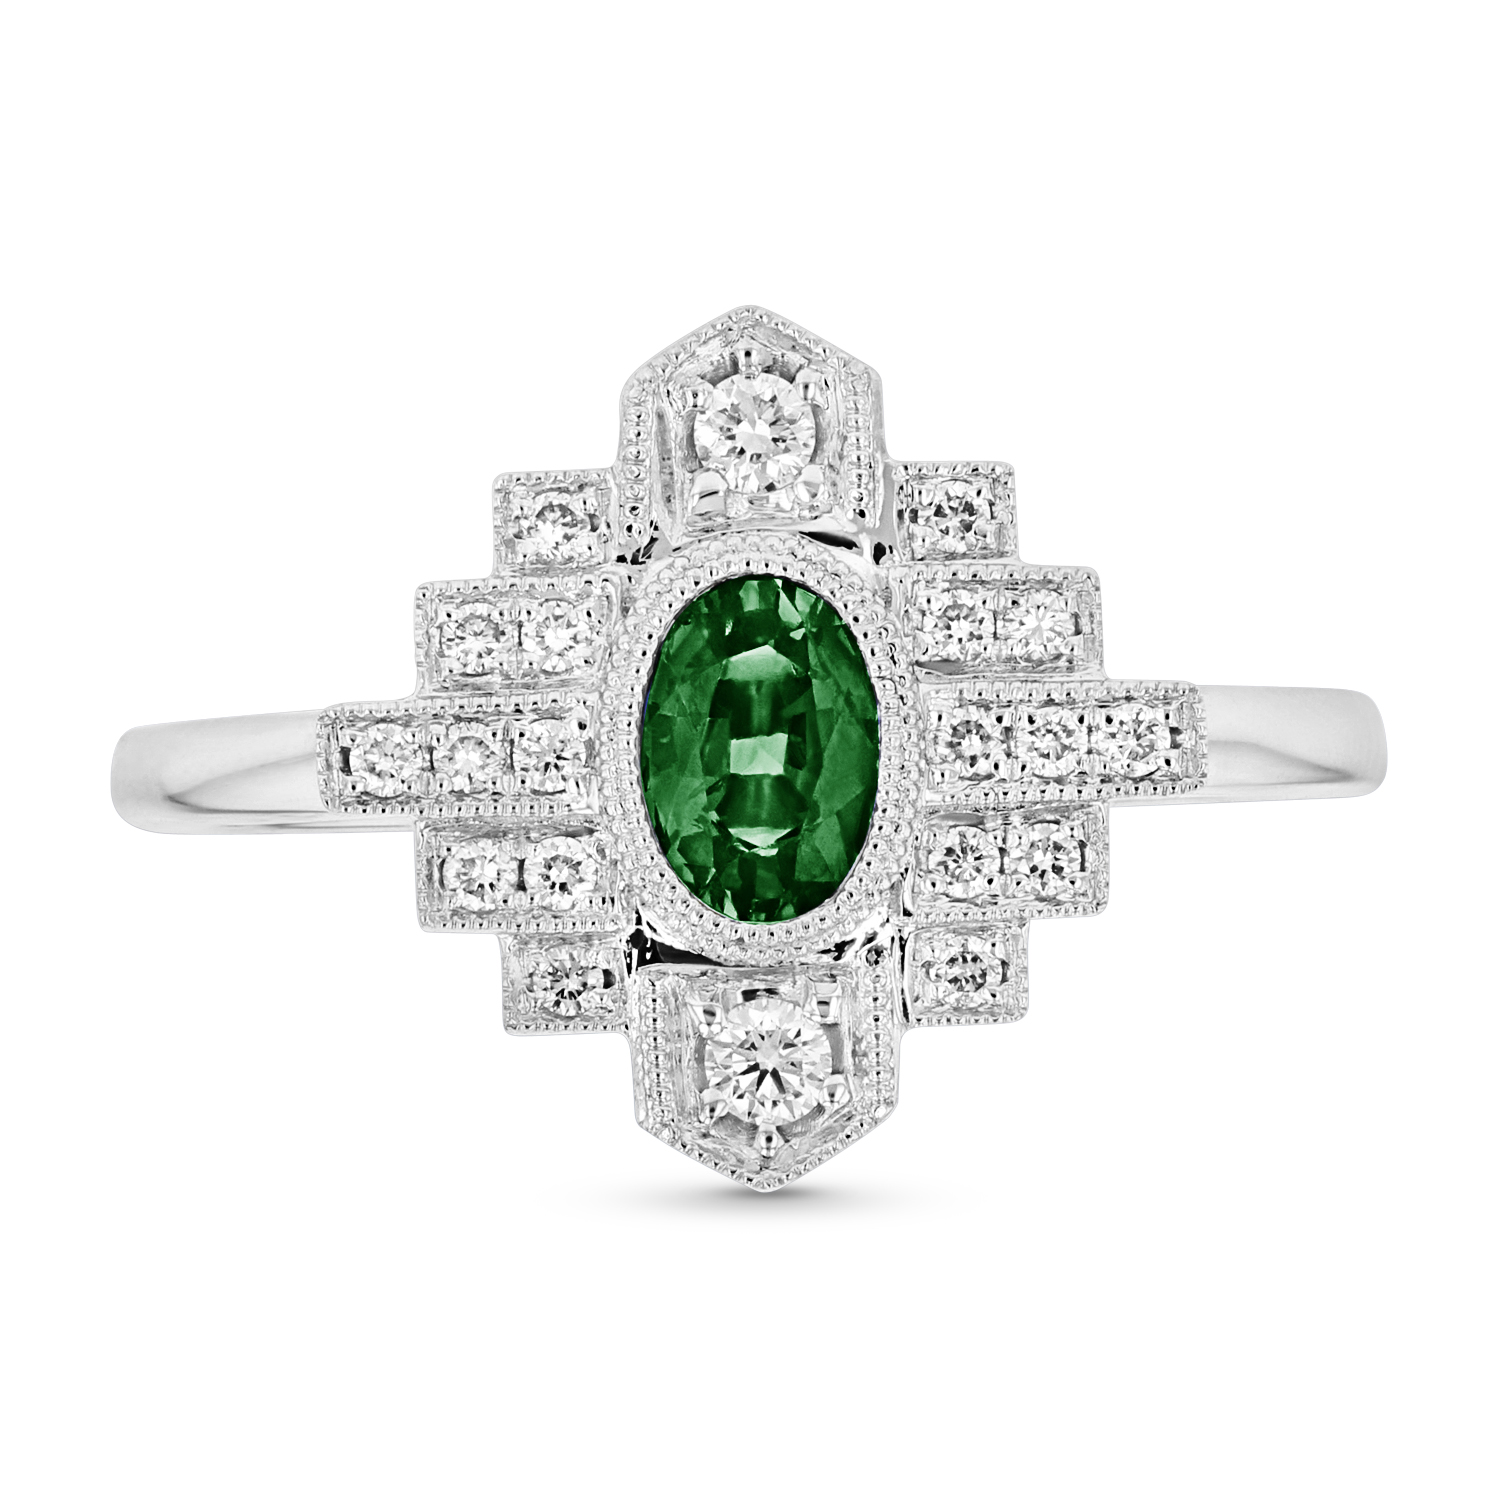 View 0.69ctw Emerald and Diamond  Ring in 14k White Gold